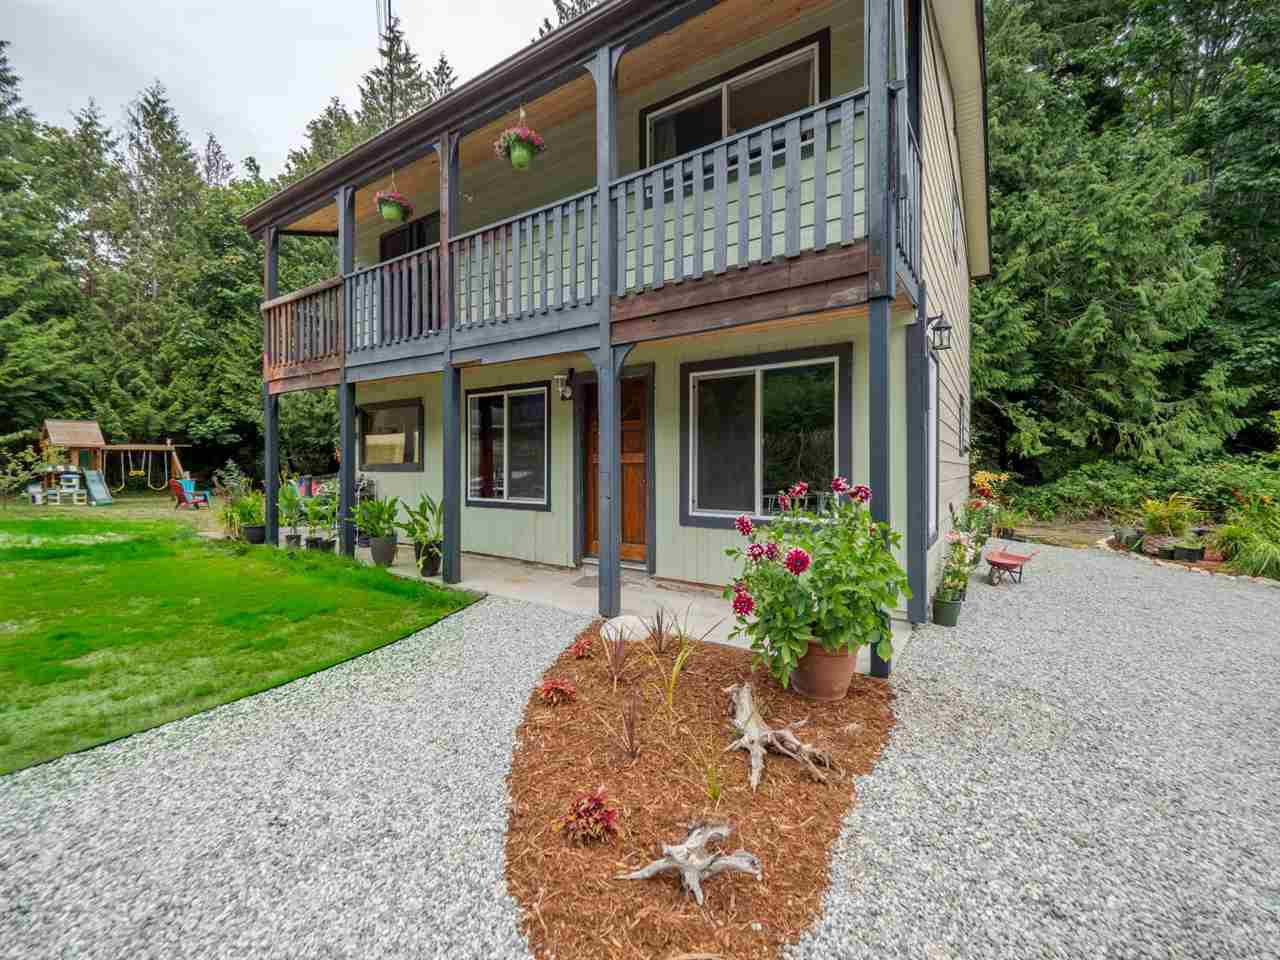 Photo 17: Photos: 1625 BLOWER Road in Sechelt: Sechelt District House for sale (Sunshine Coast)  : MLS®# R2394268